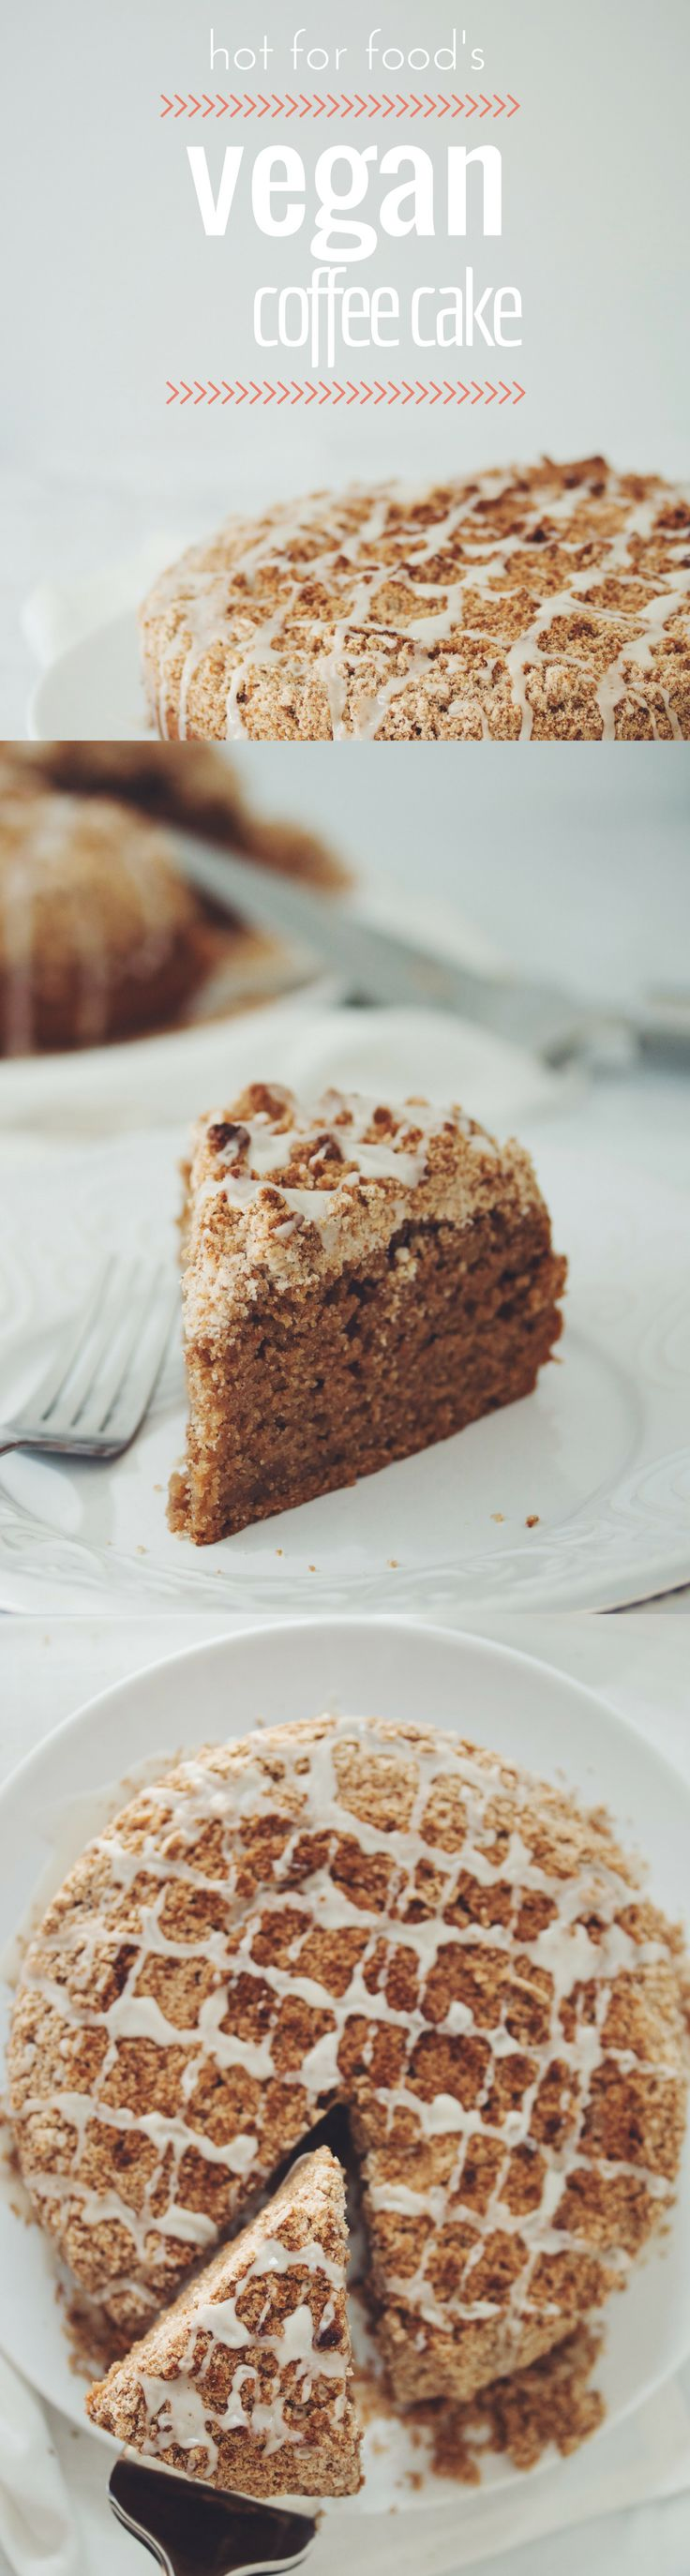 VEGAN COFFEE CAKE | RECIPE on hotforfoodblog.com